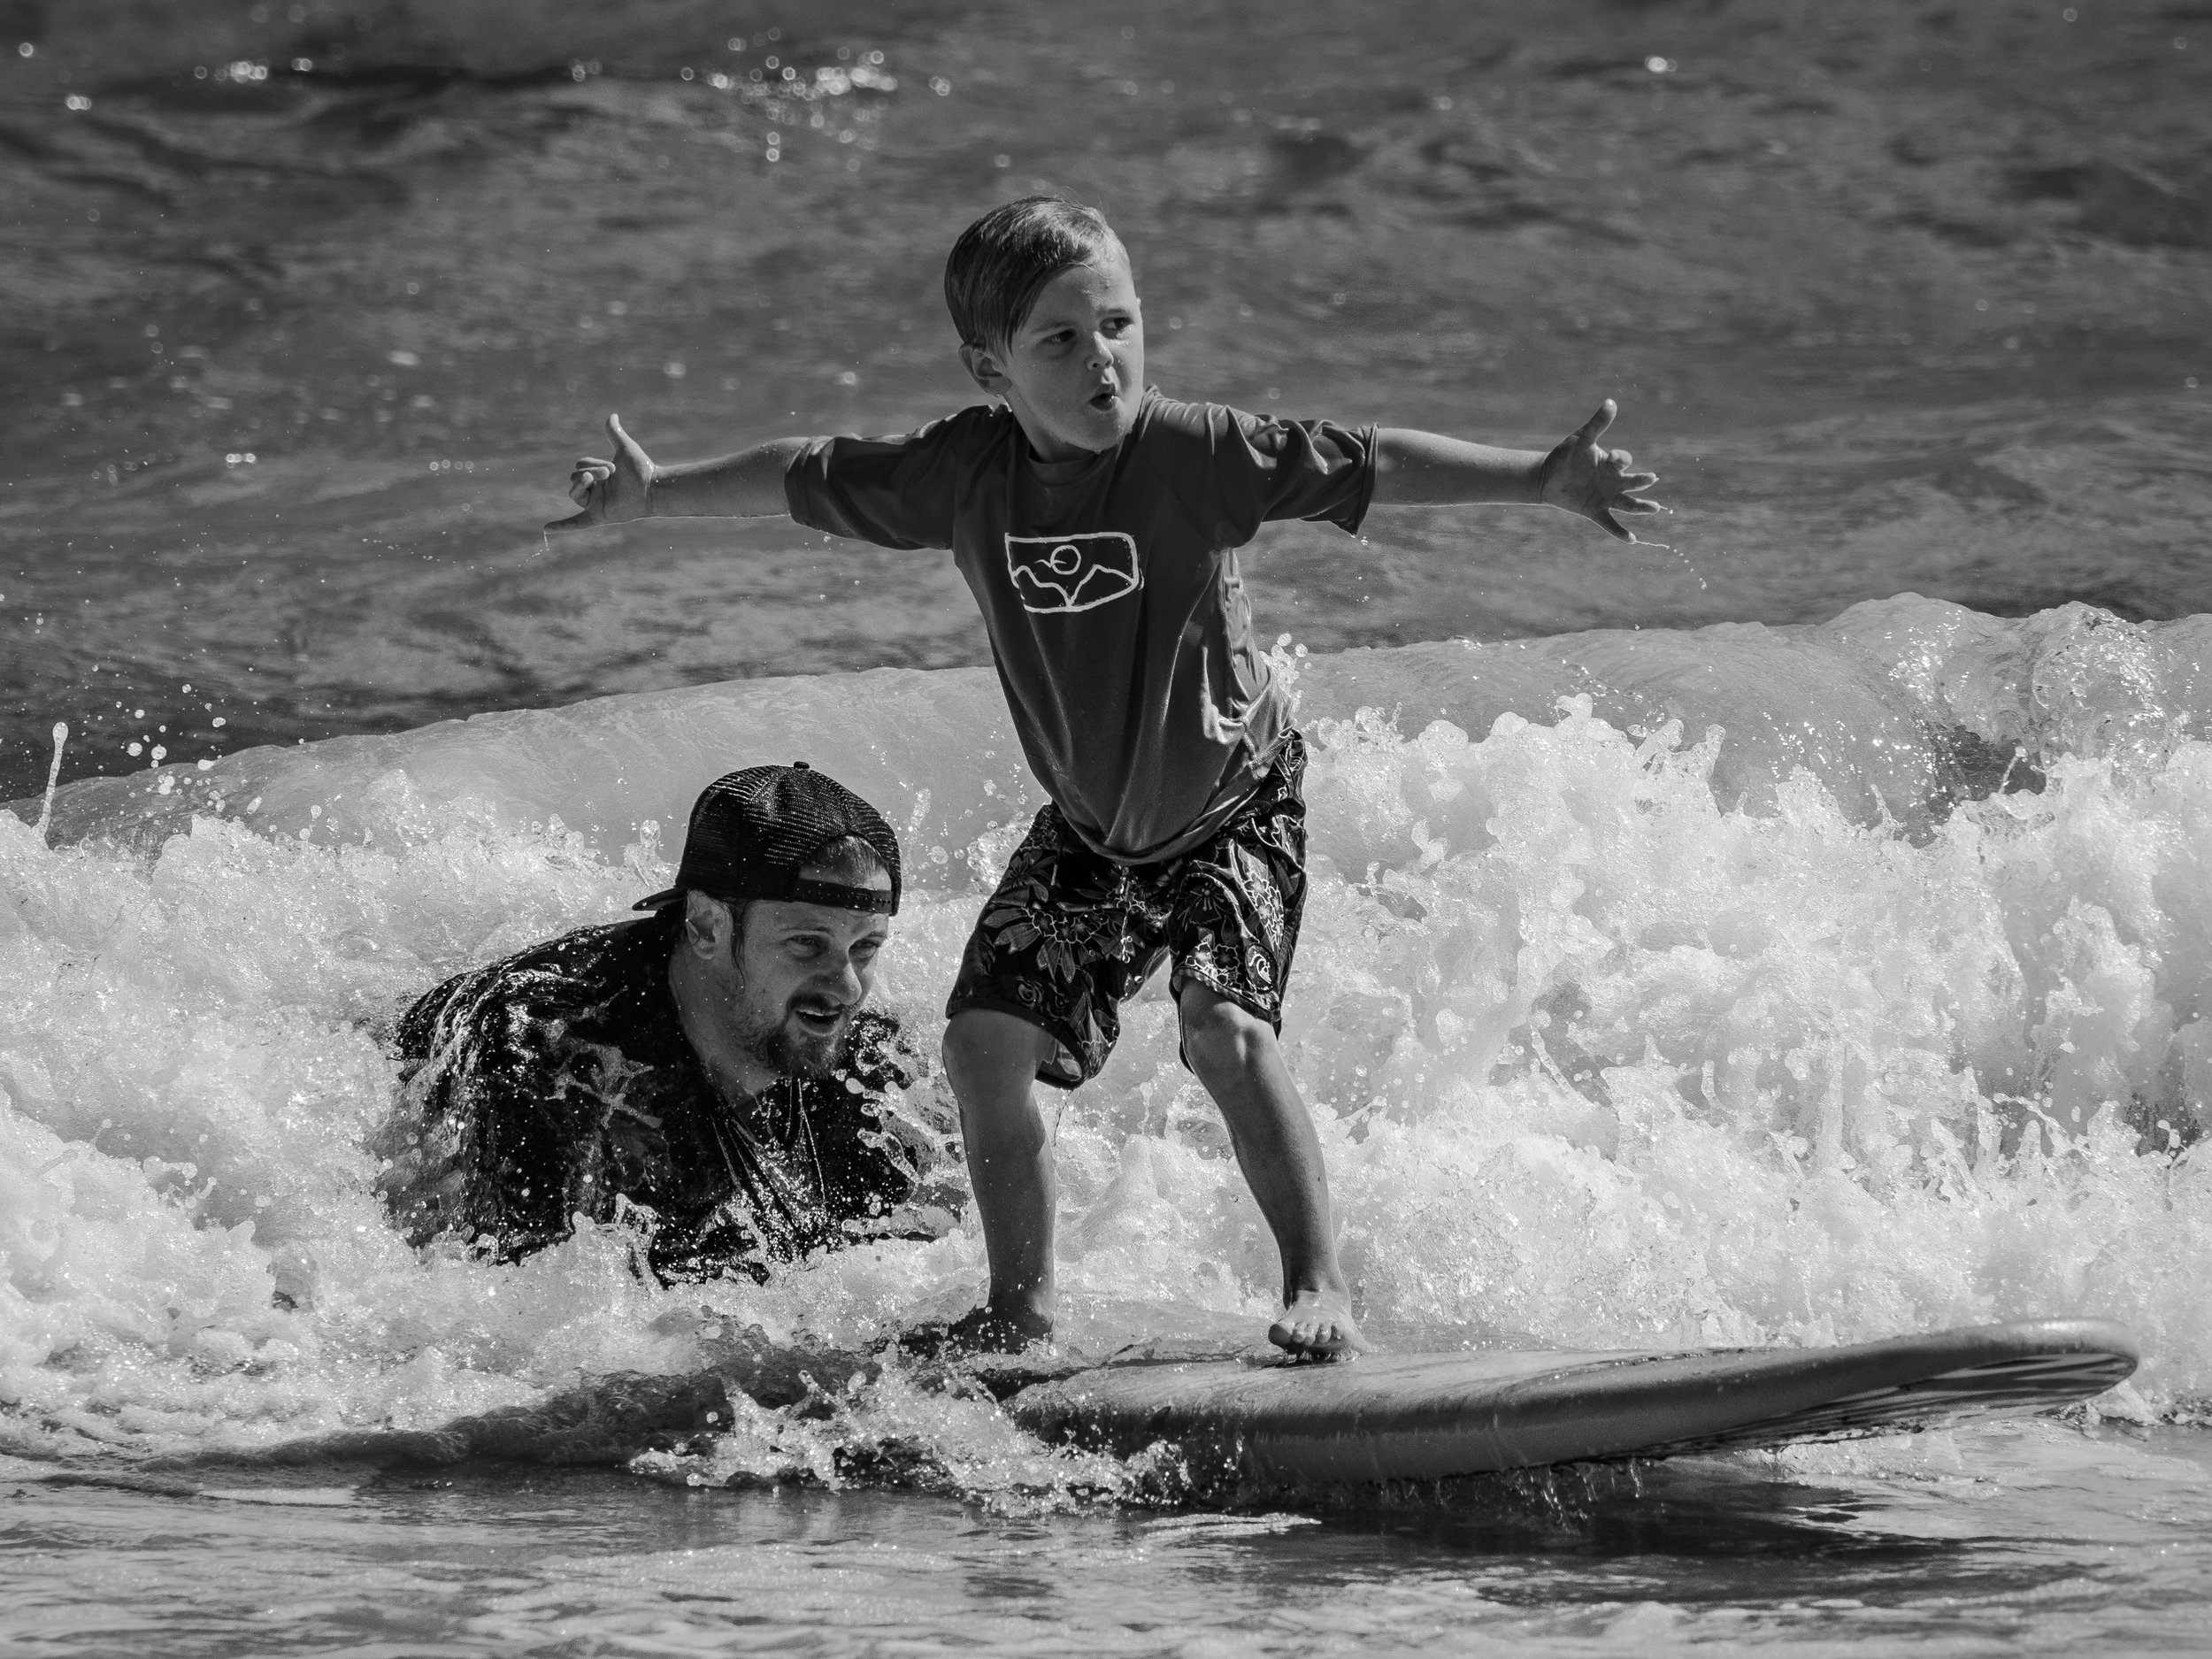 Seth T. Buckley Photojournalism - Kailu Shorebreak Classic - Surfing Compition in Hawaii